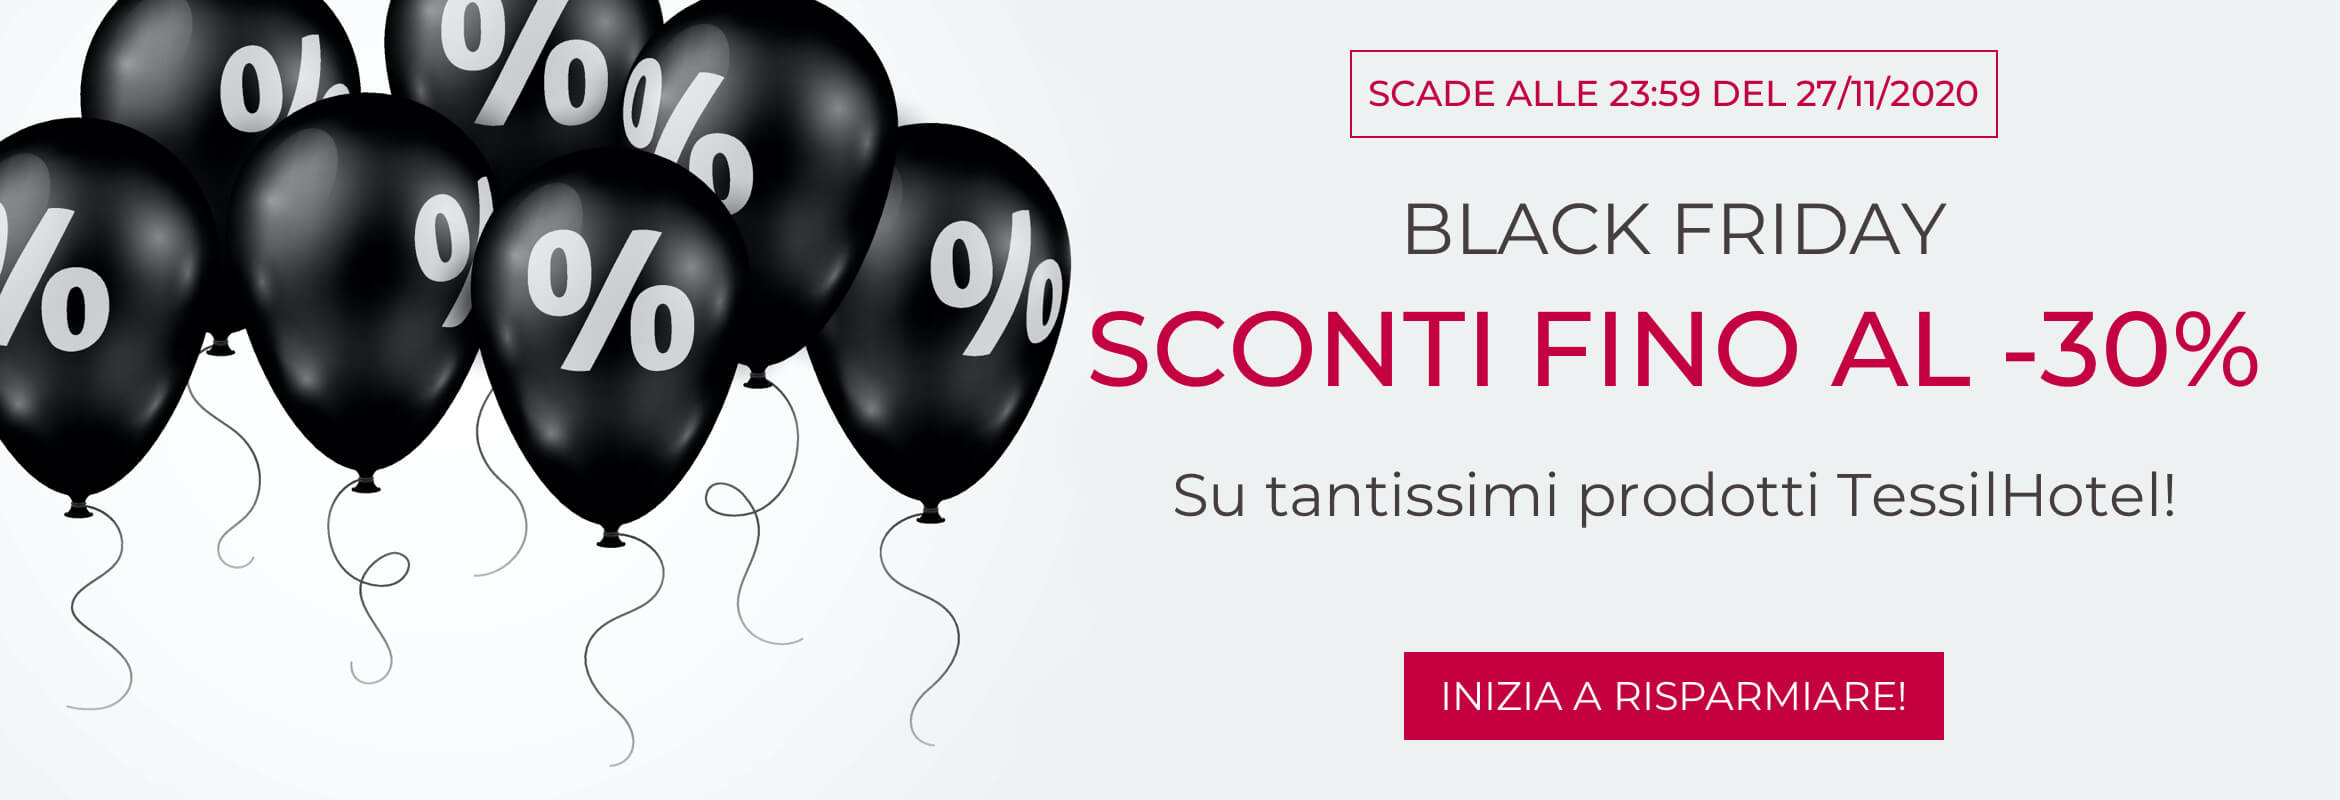 BLACK FRIDAY PRODOTTI AL -30%